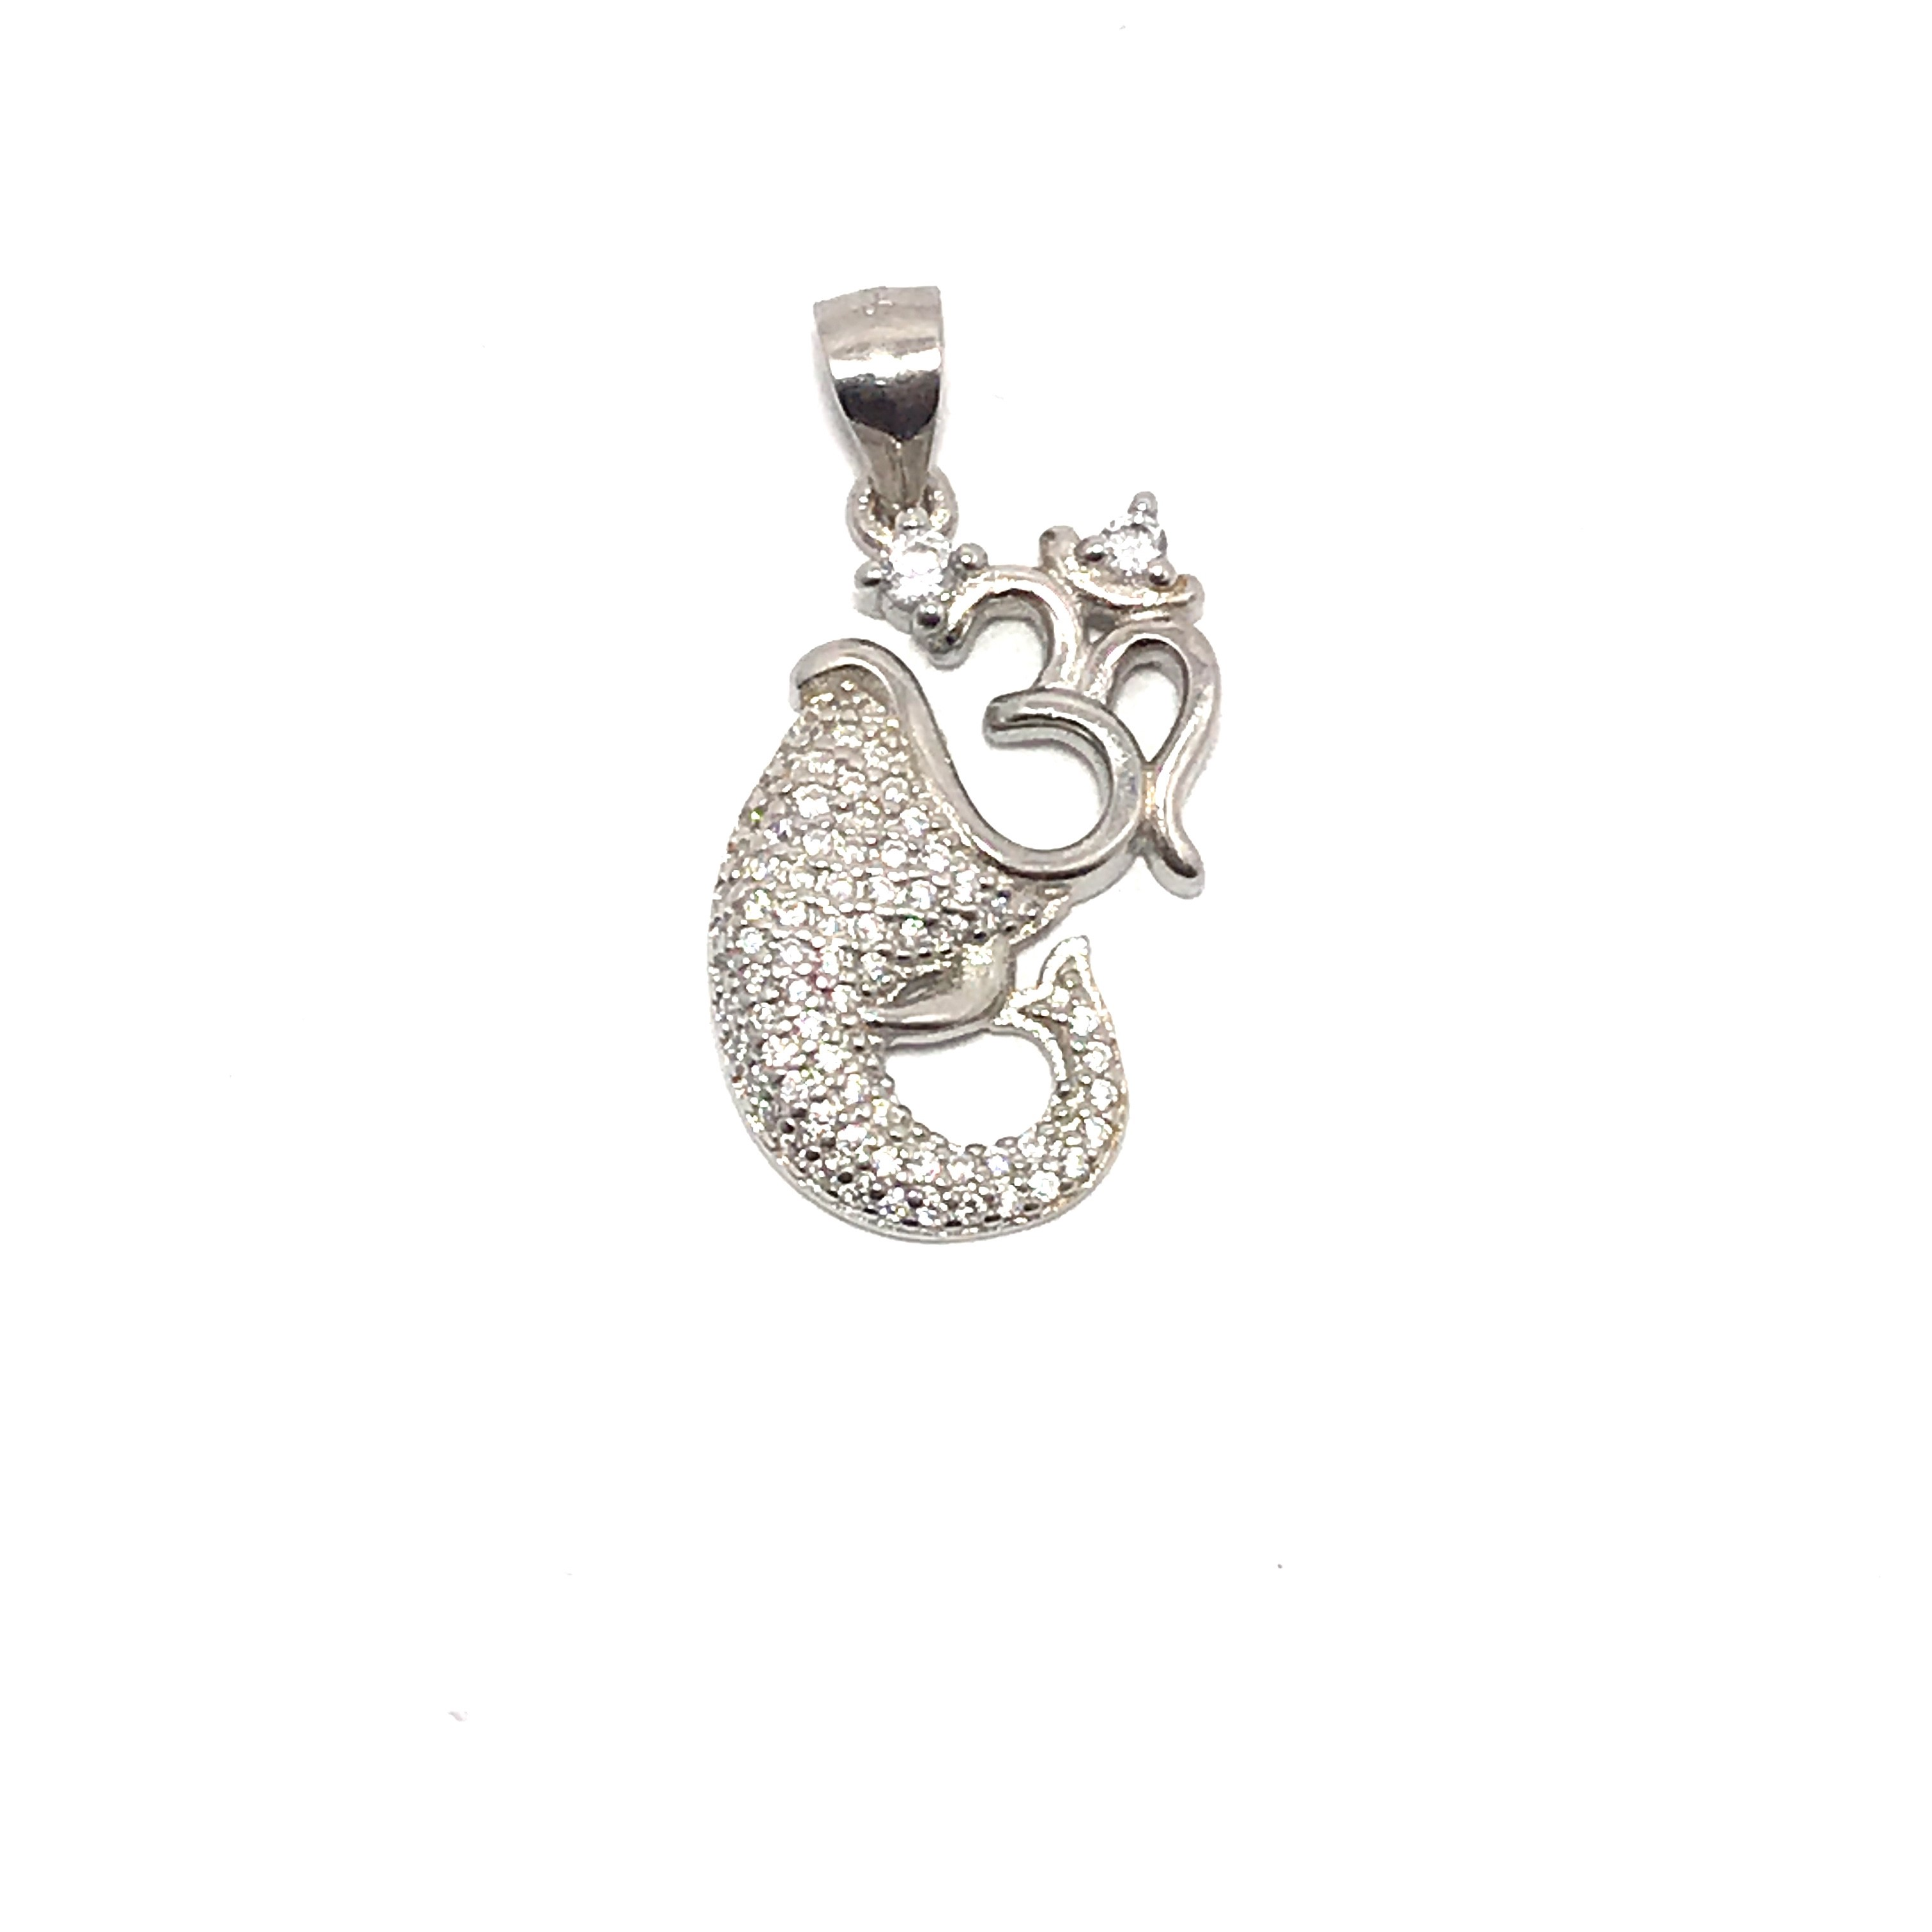 Religious Lord Ganesha With Aum 925 Silver Pendant-GD001